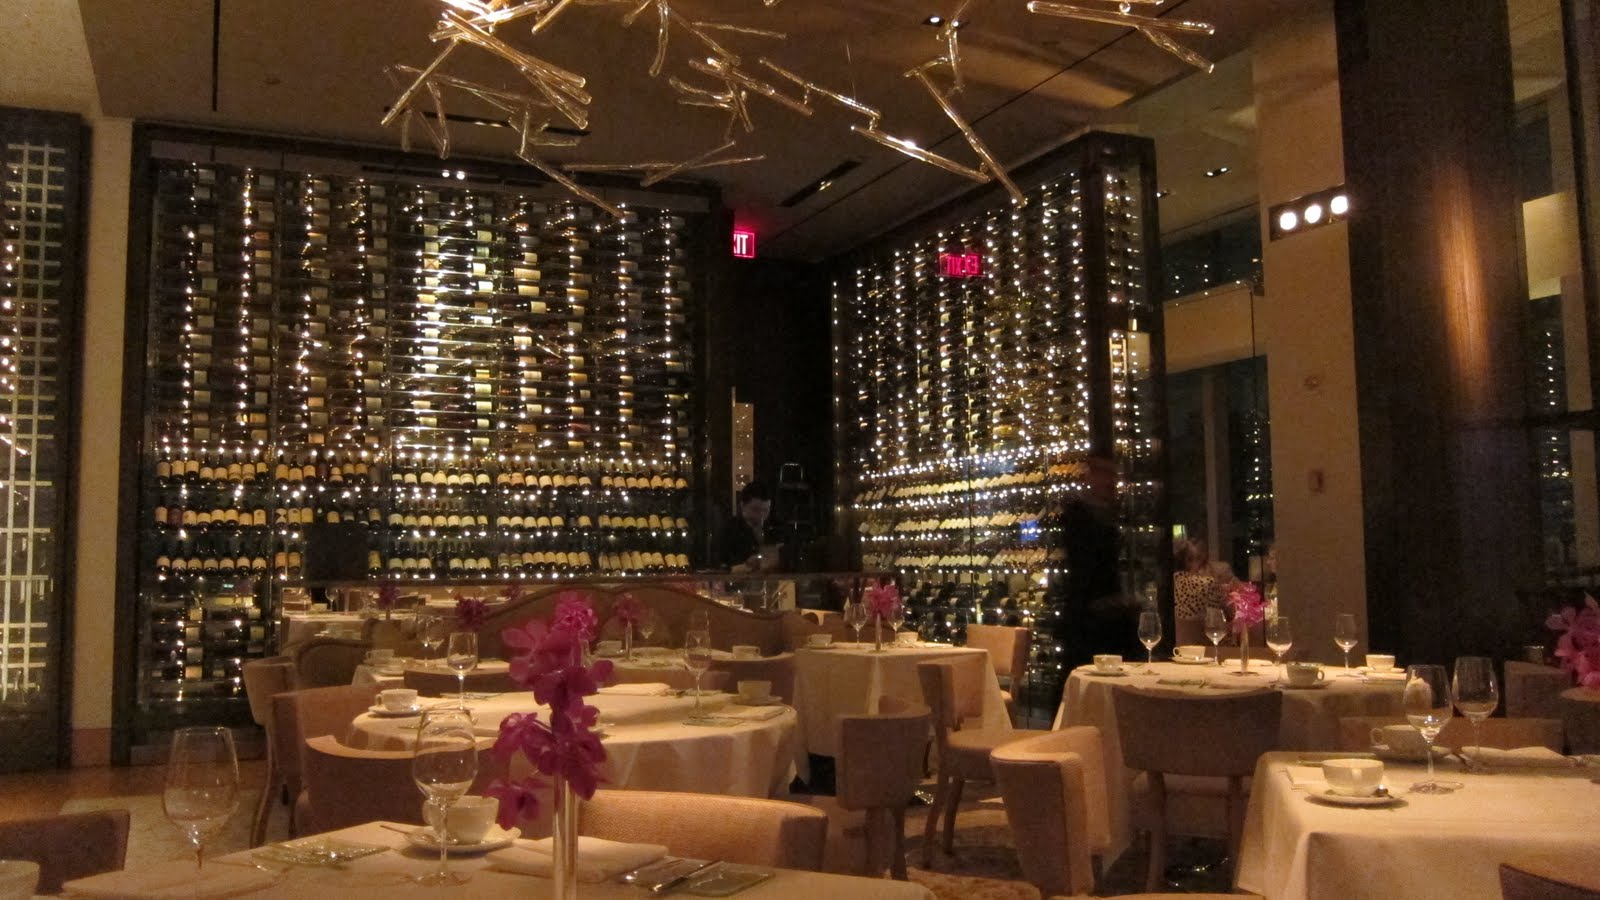 Asiate NYC restaurants TOP 10 Best-Looking Restaurants in New York IMG 2982